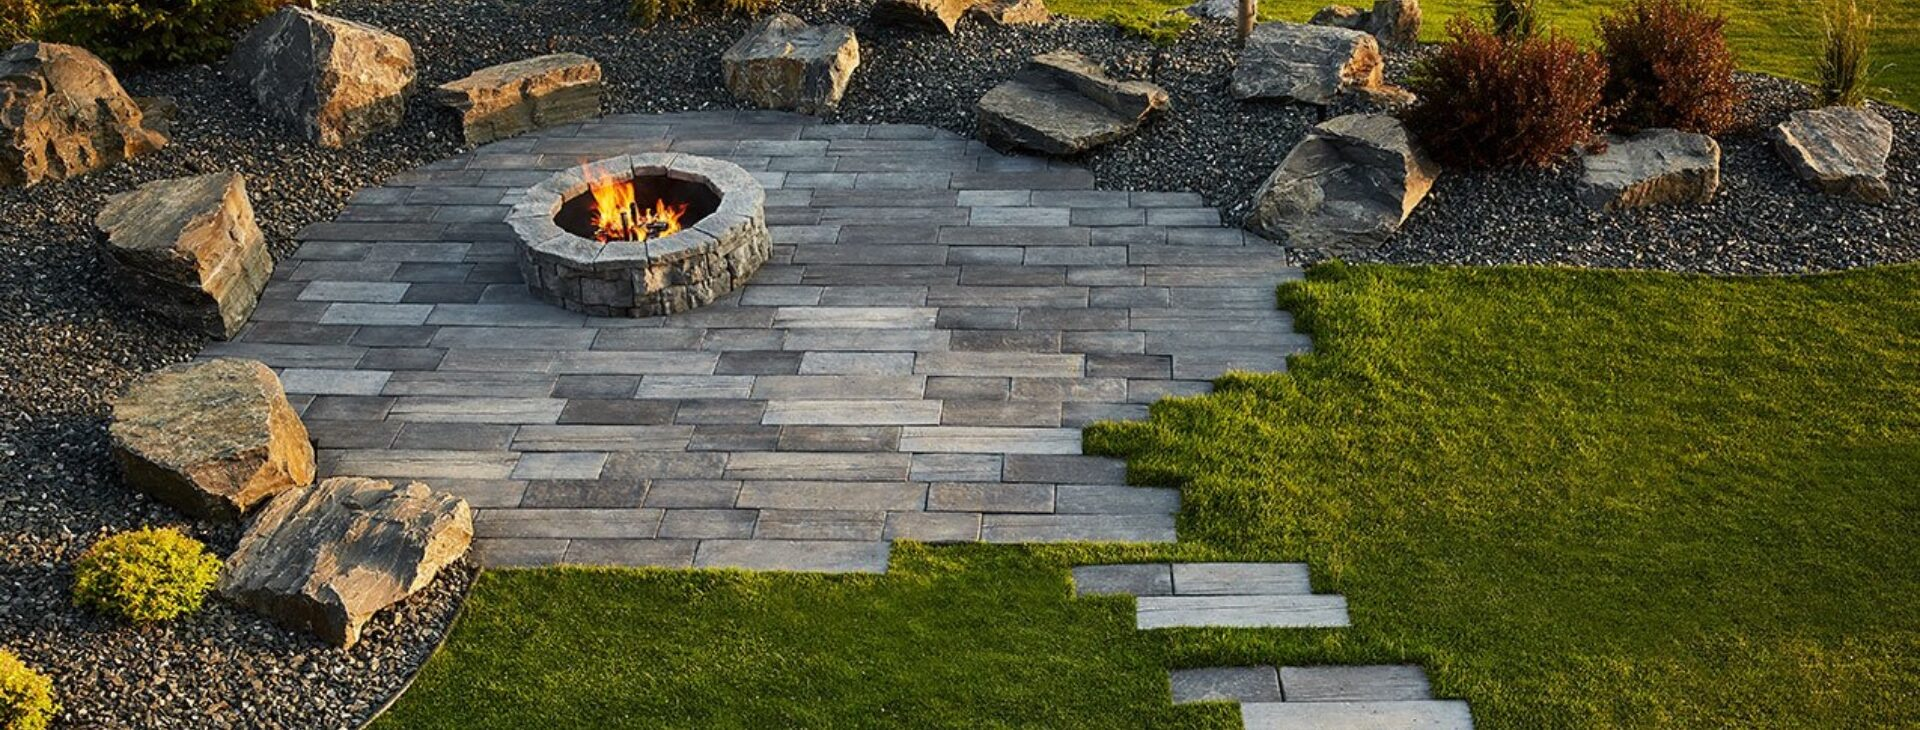 We are Certified Landscape Architect